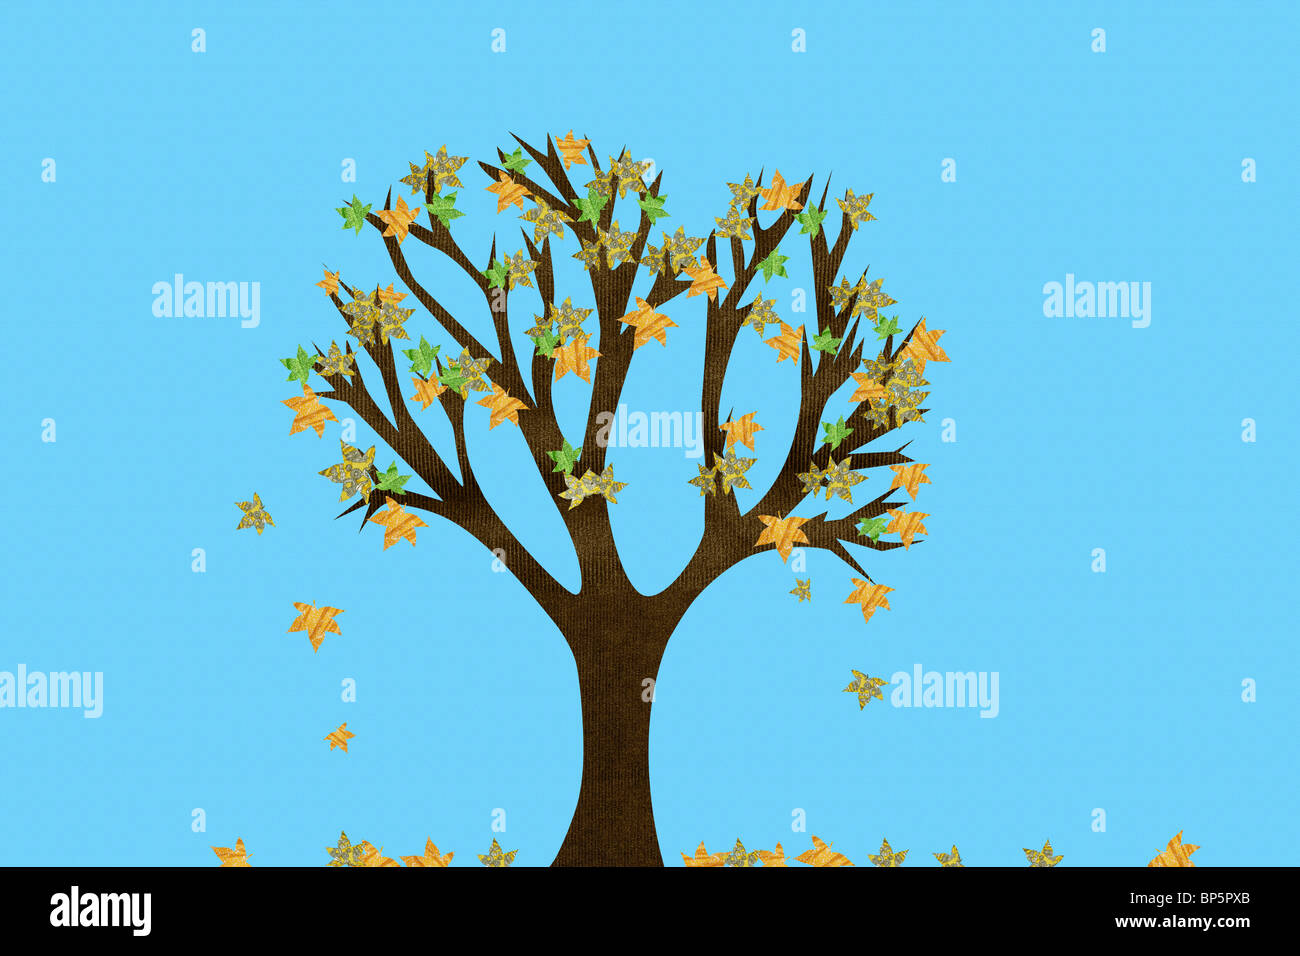 Tree in autumn - Stock Image